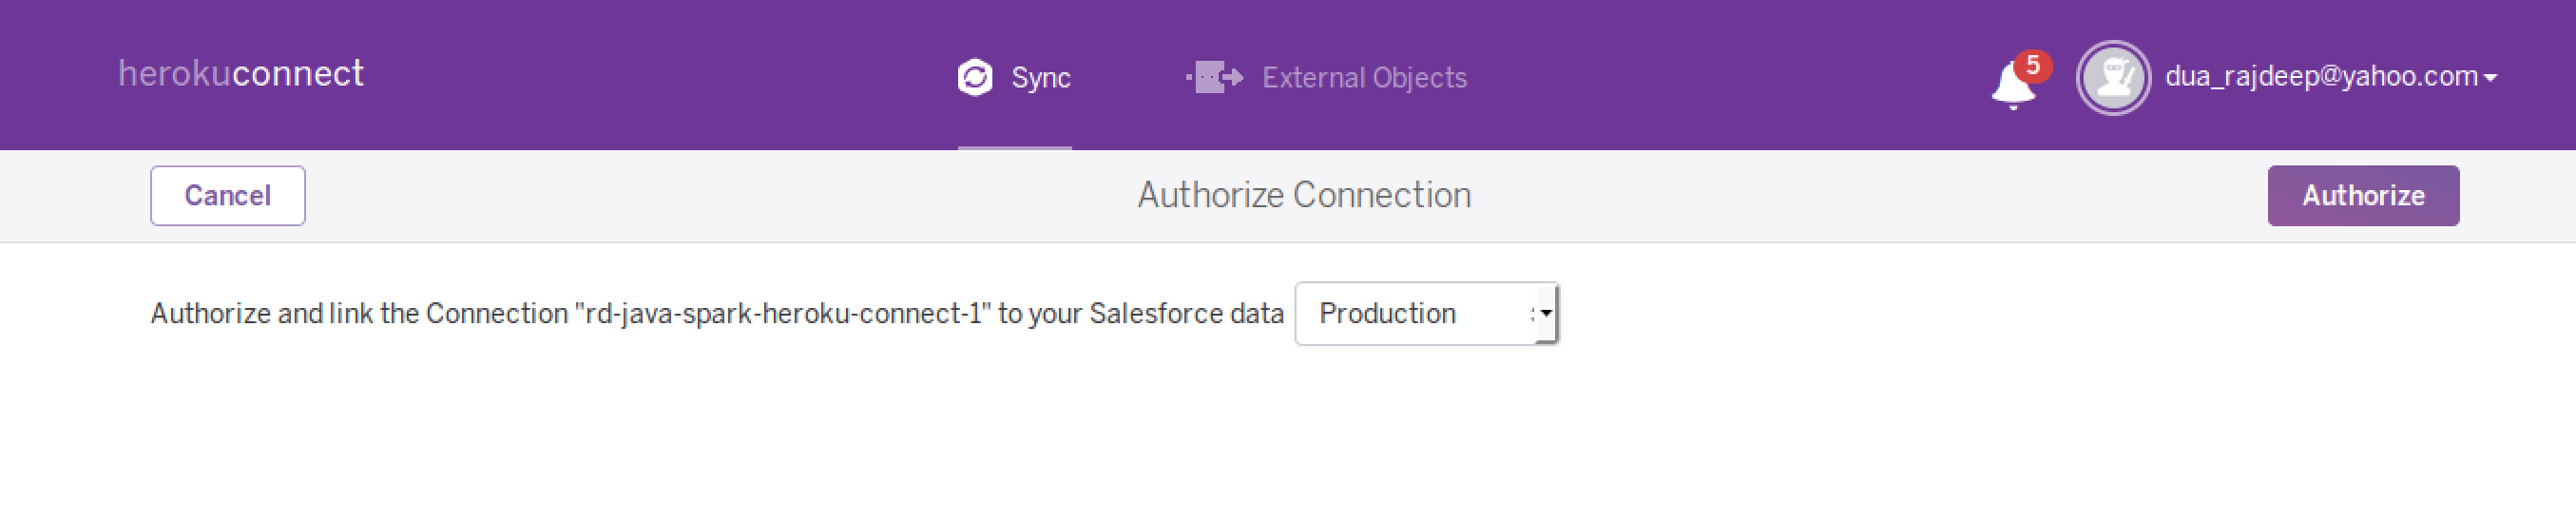 Heroku Connect with Flask and Psycopg2 | Developer Force Blog